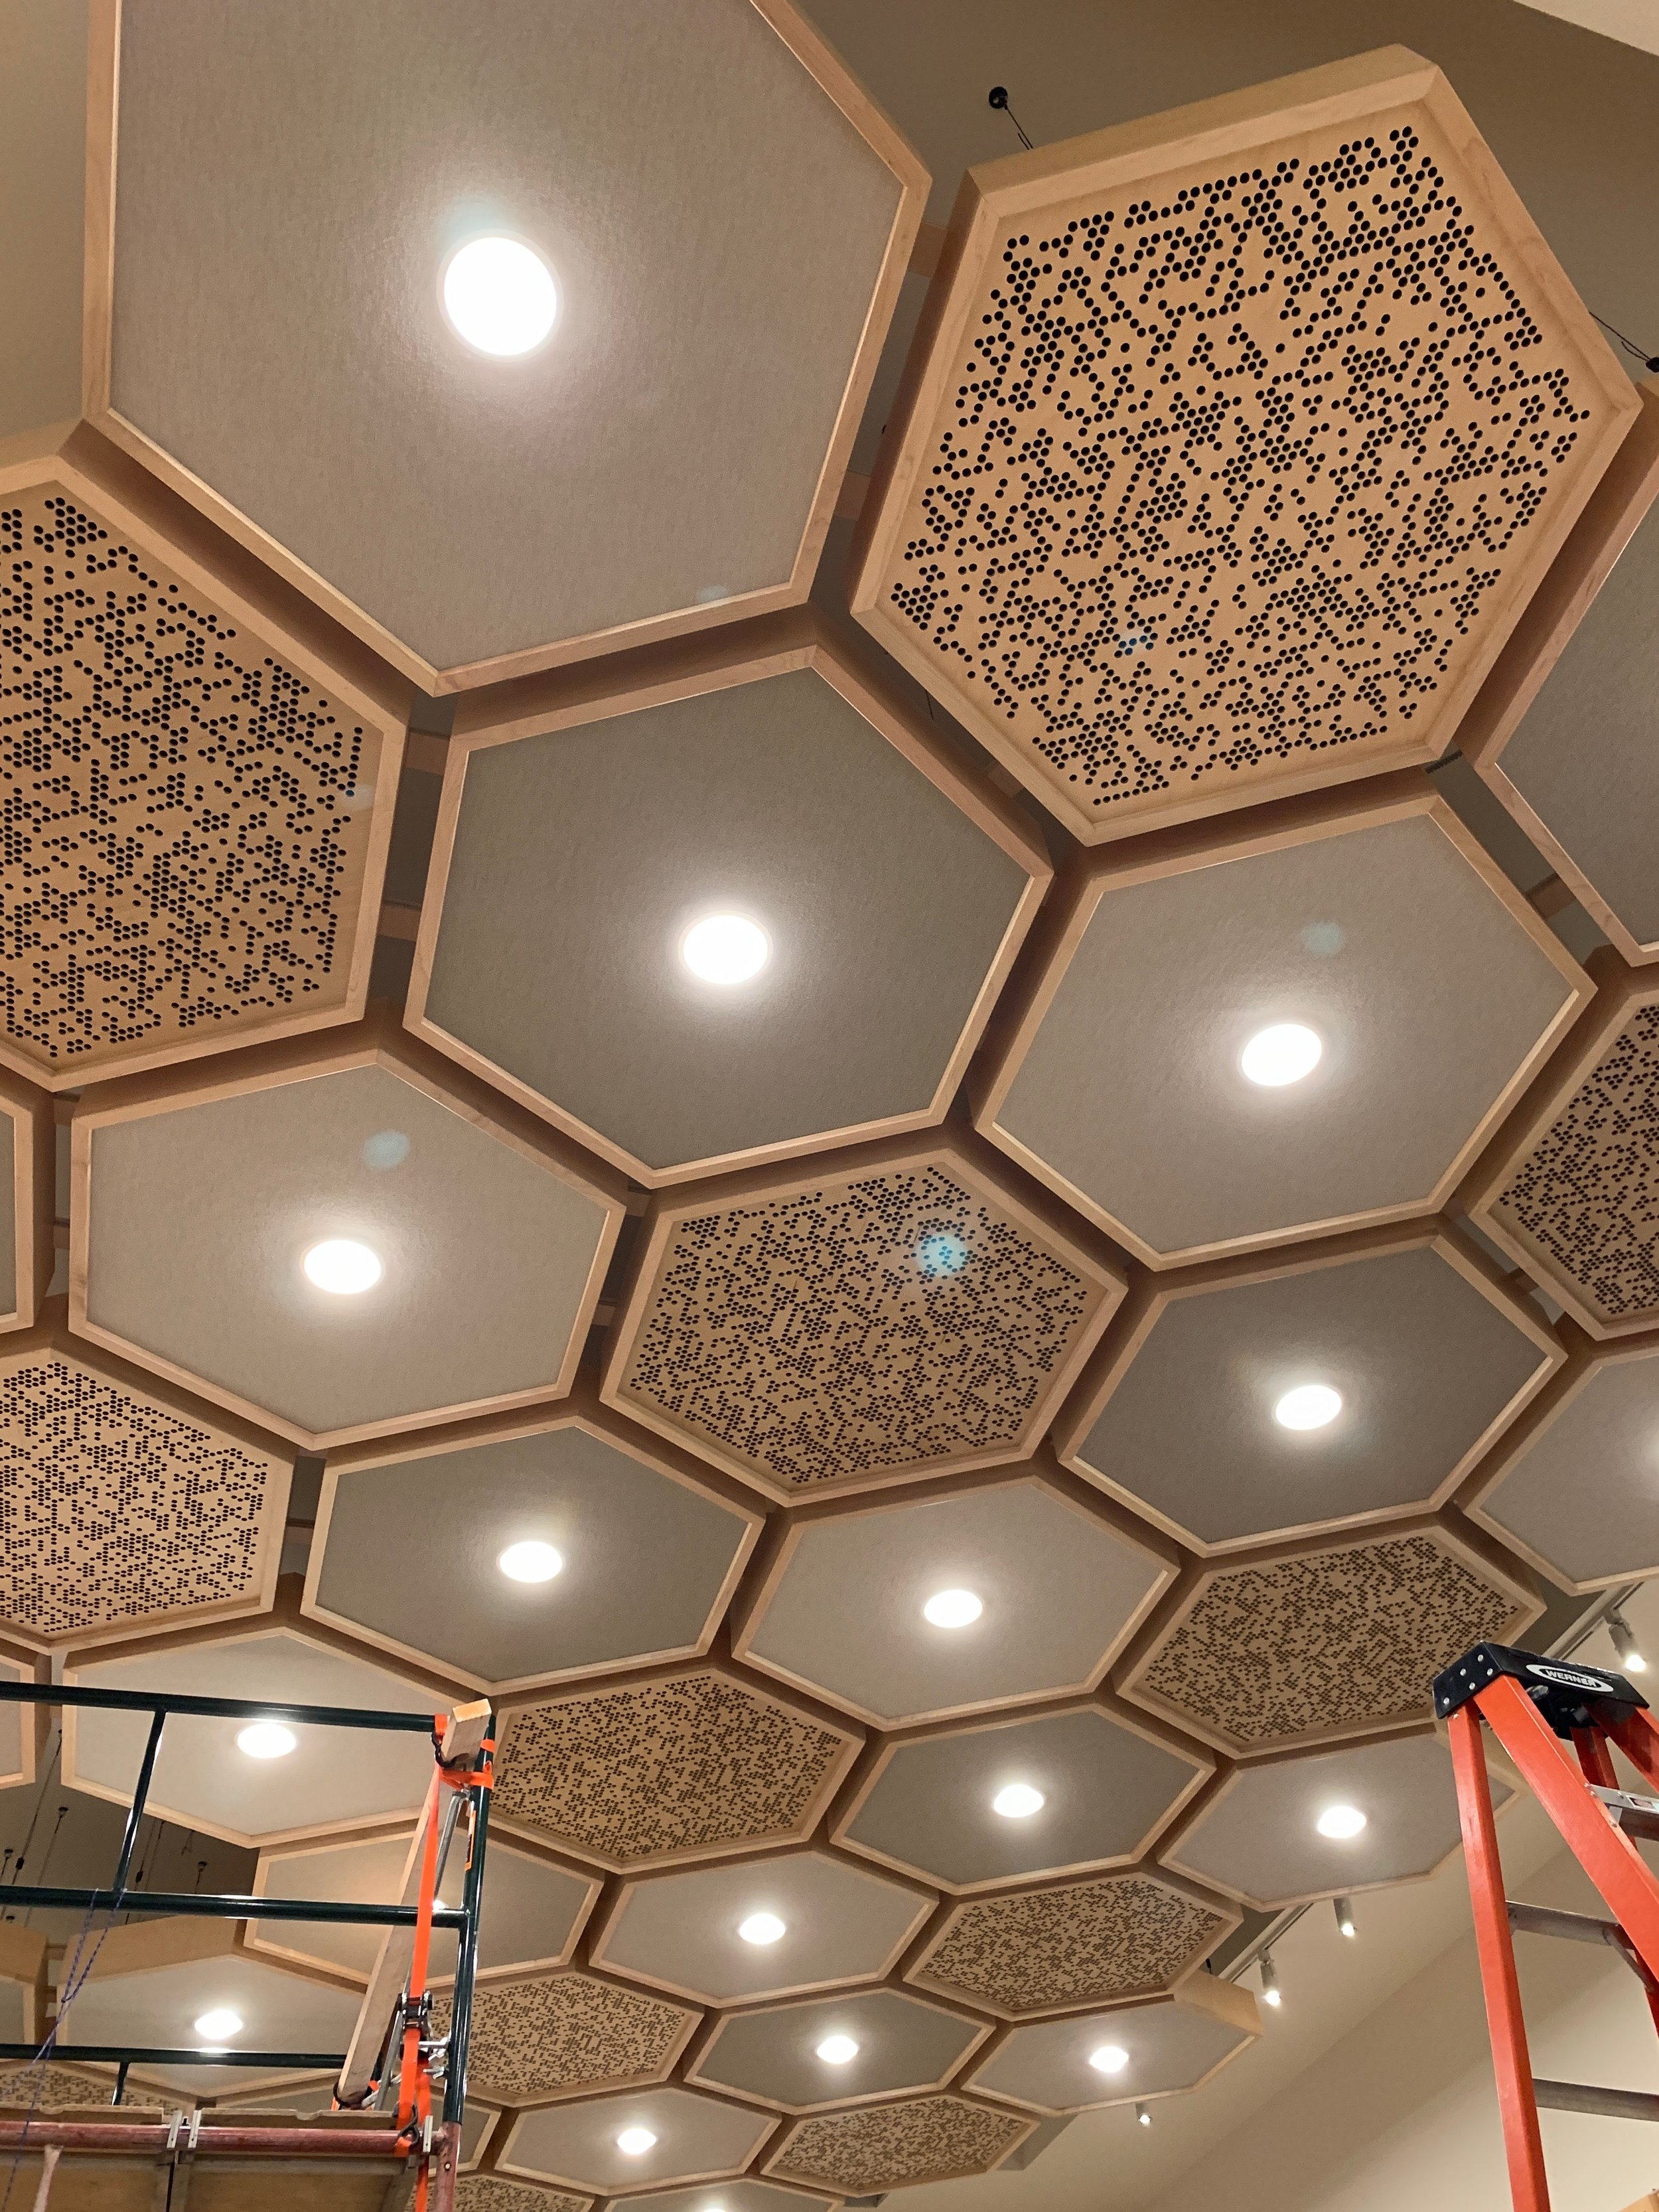 The lights in the cloud really brought it to life, this design is all Wes Lachot's so I certainly take no credit for it. It is stunning when you are standing beneath it.